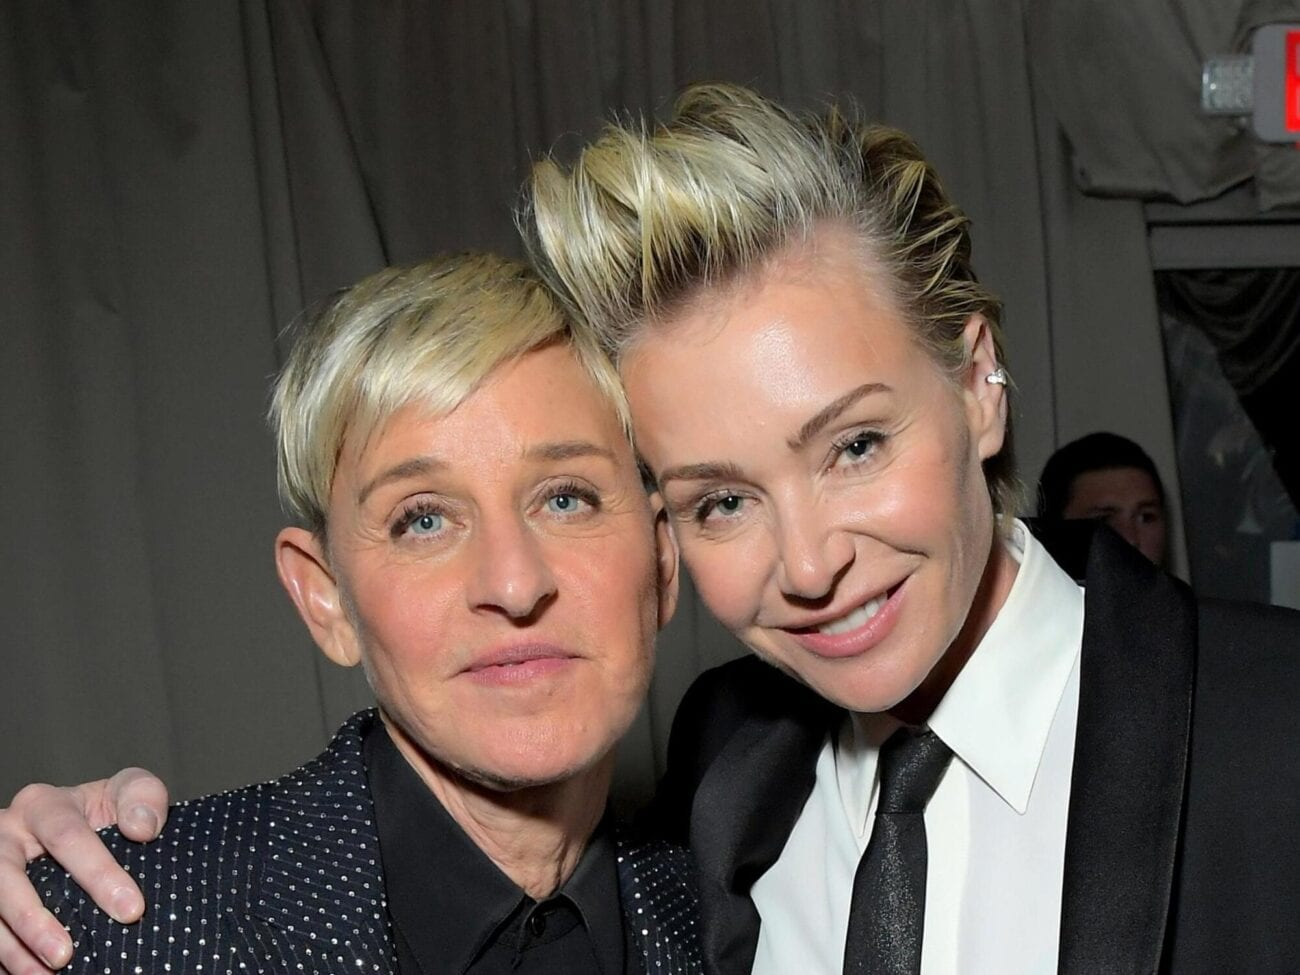 Ellen DeGeneres Gets Support From Wife Portia De Rossi After Backlash